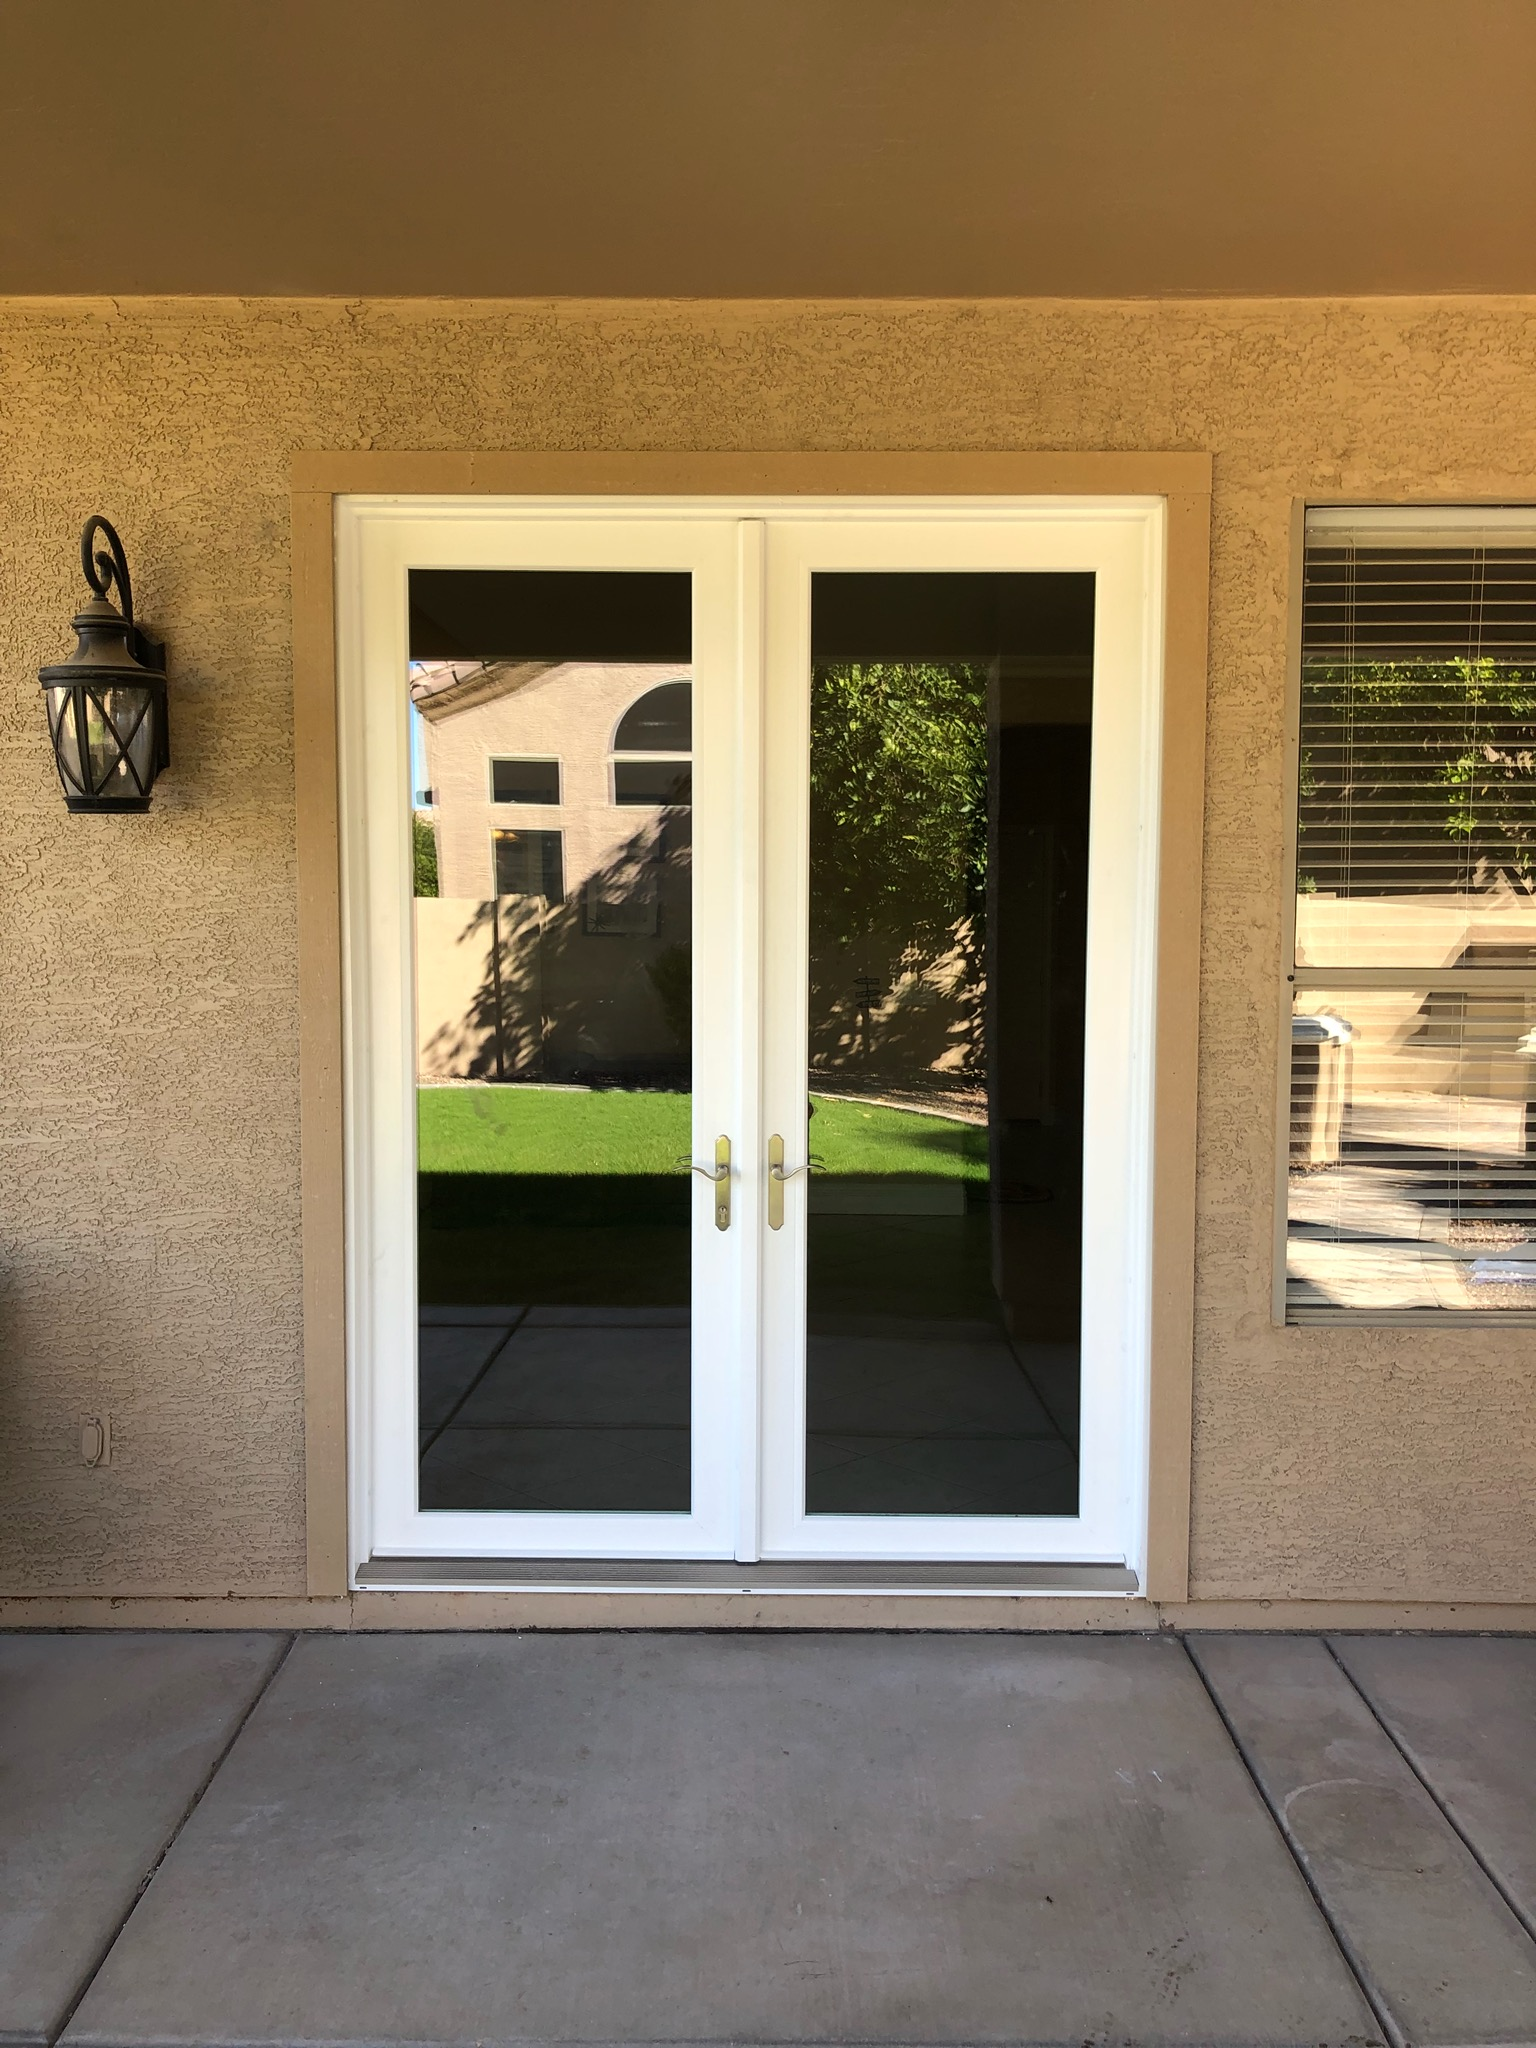 Arizona Window and Door in Scottsdale and Tucson showing french doors on patio